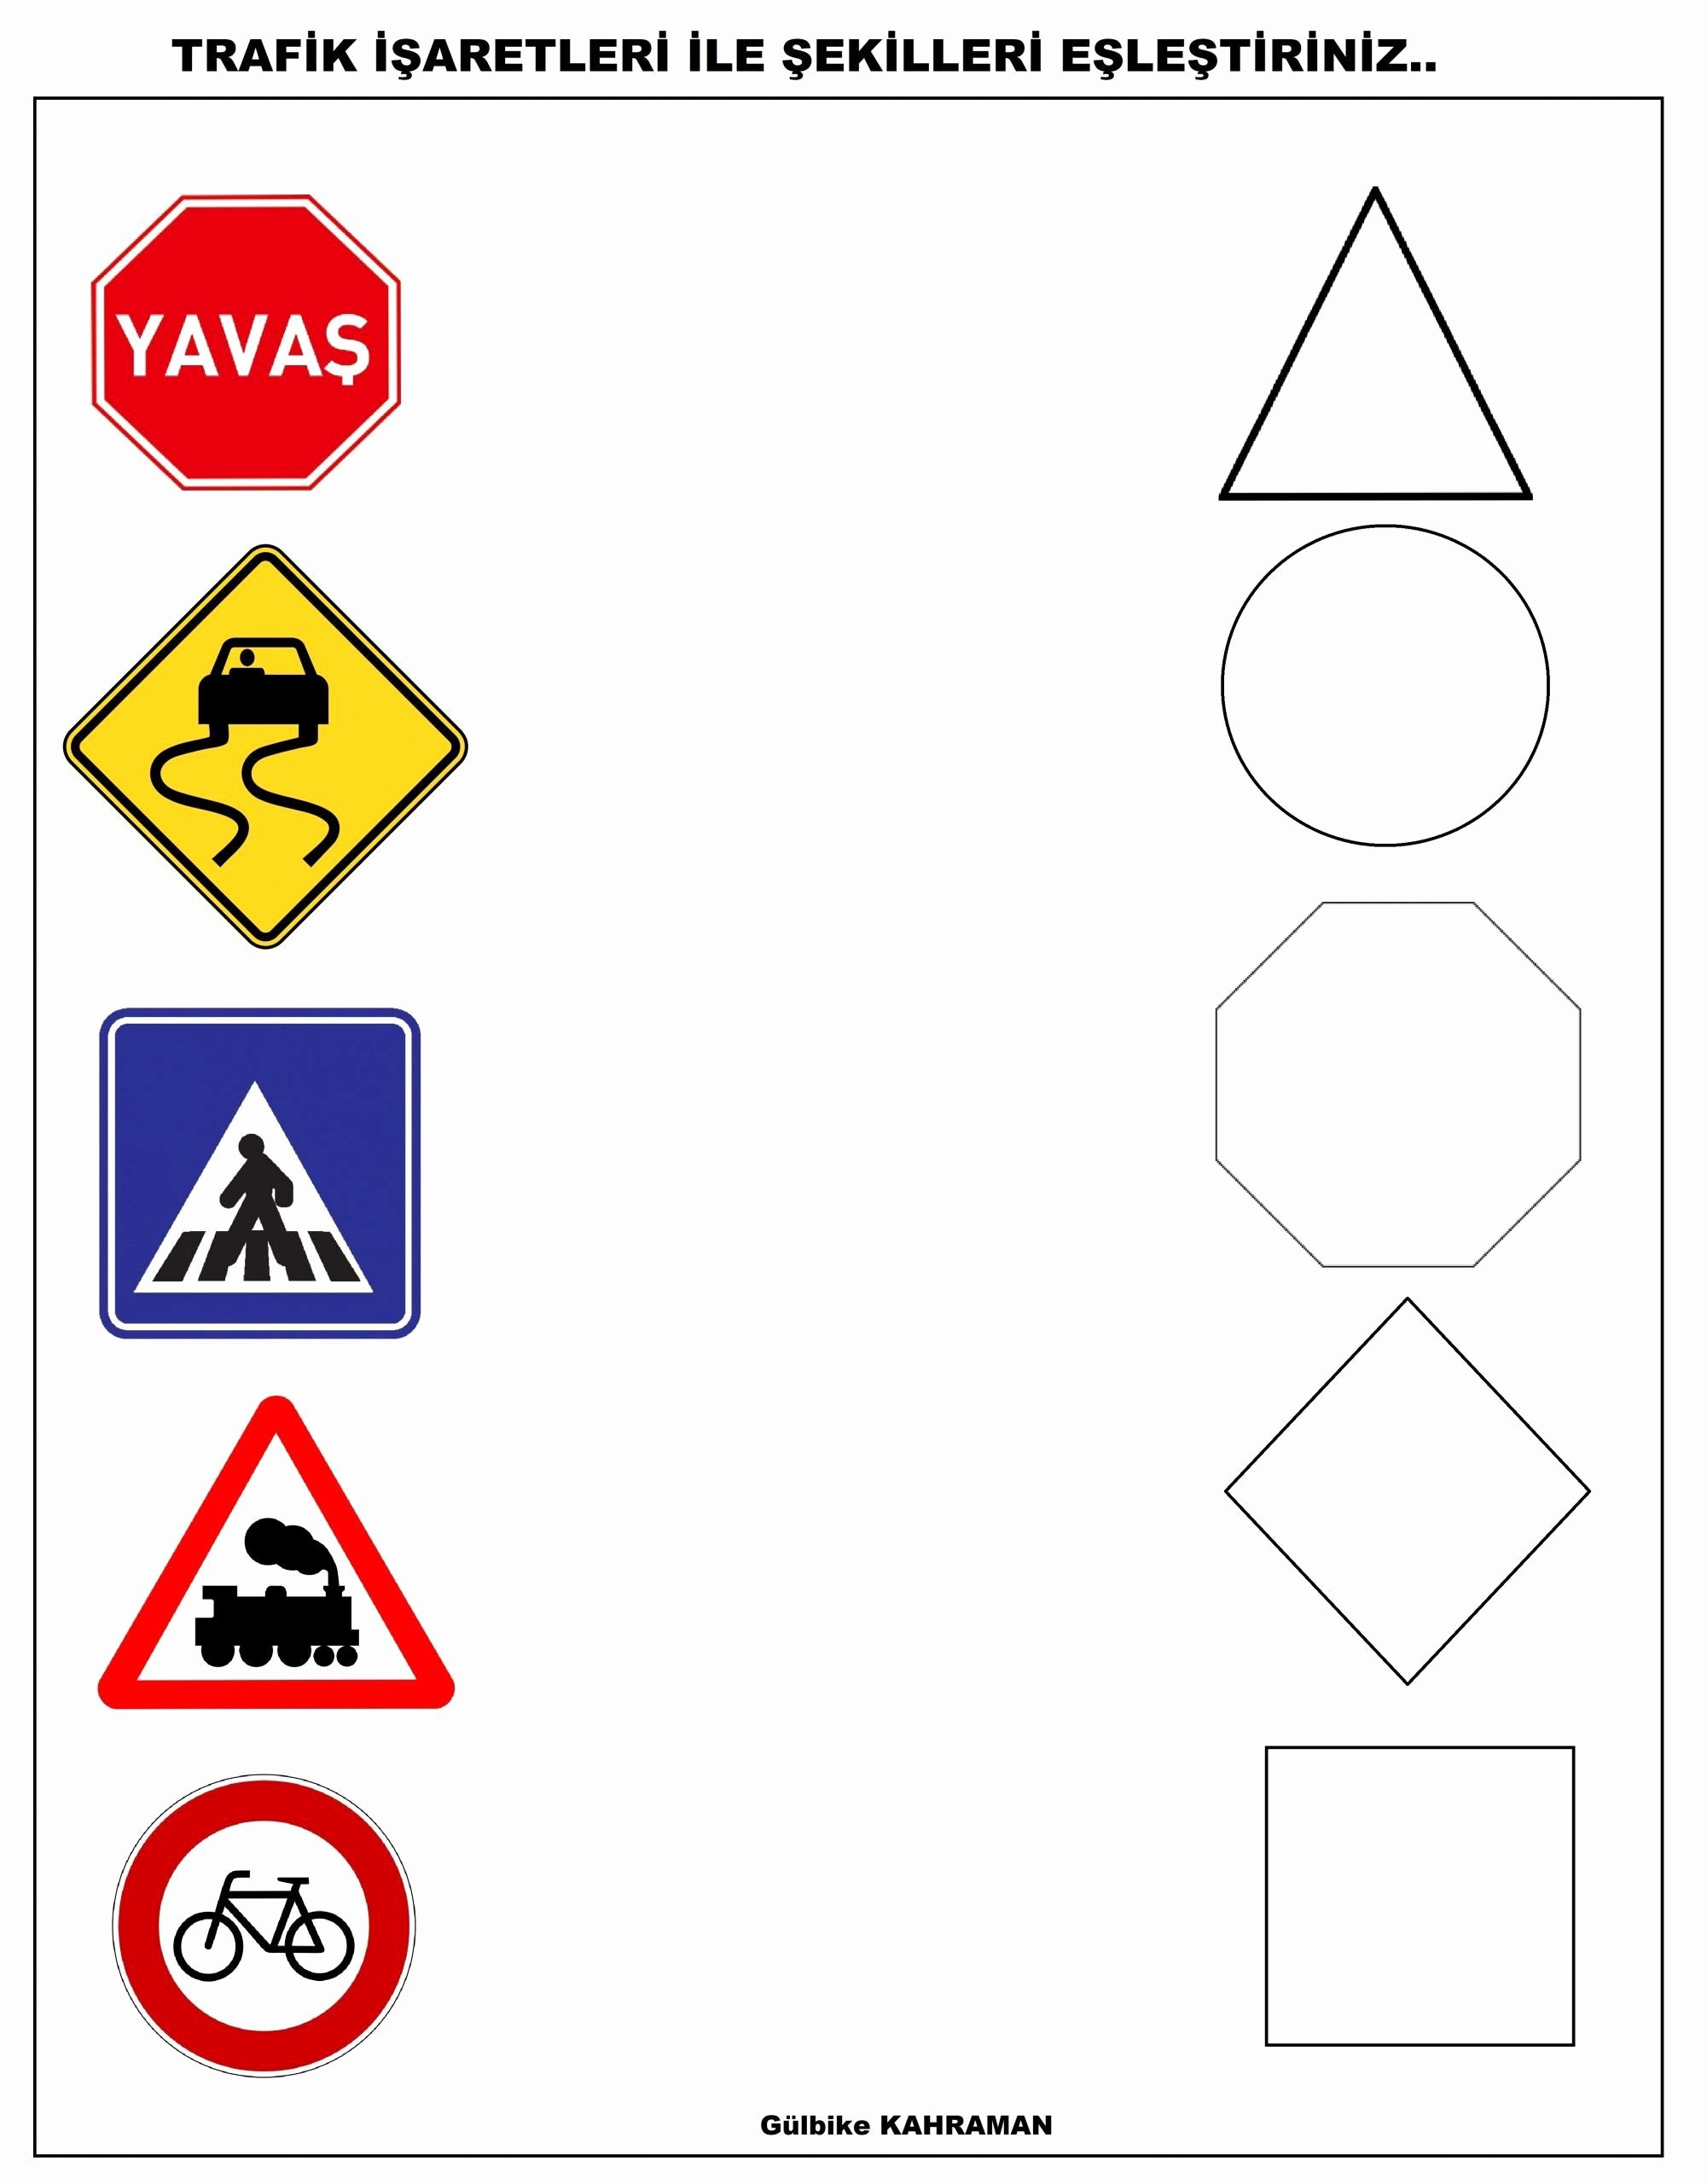 Safety Signs Worksheets for Kindergarten Inspirational Safety Signs Worksheets for Kindergarten Pedestrian Safety